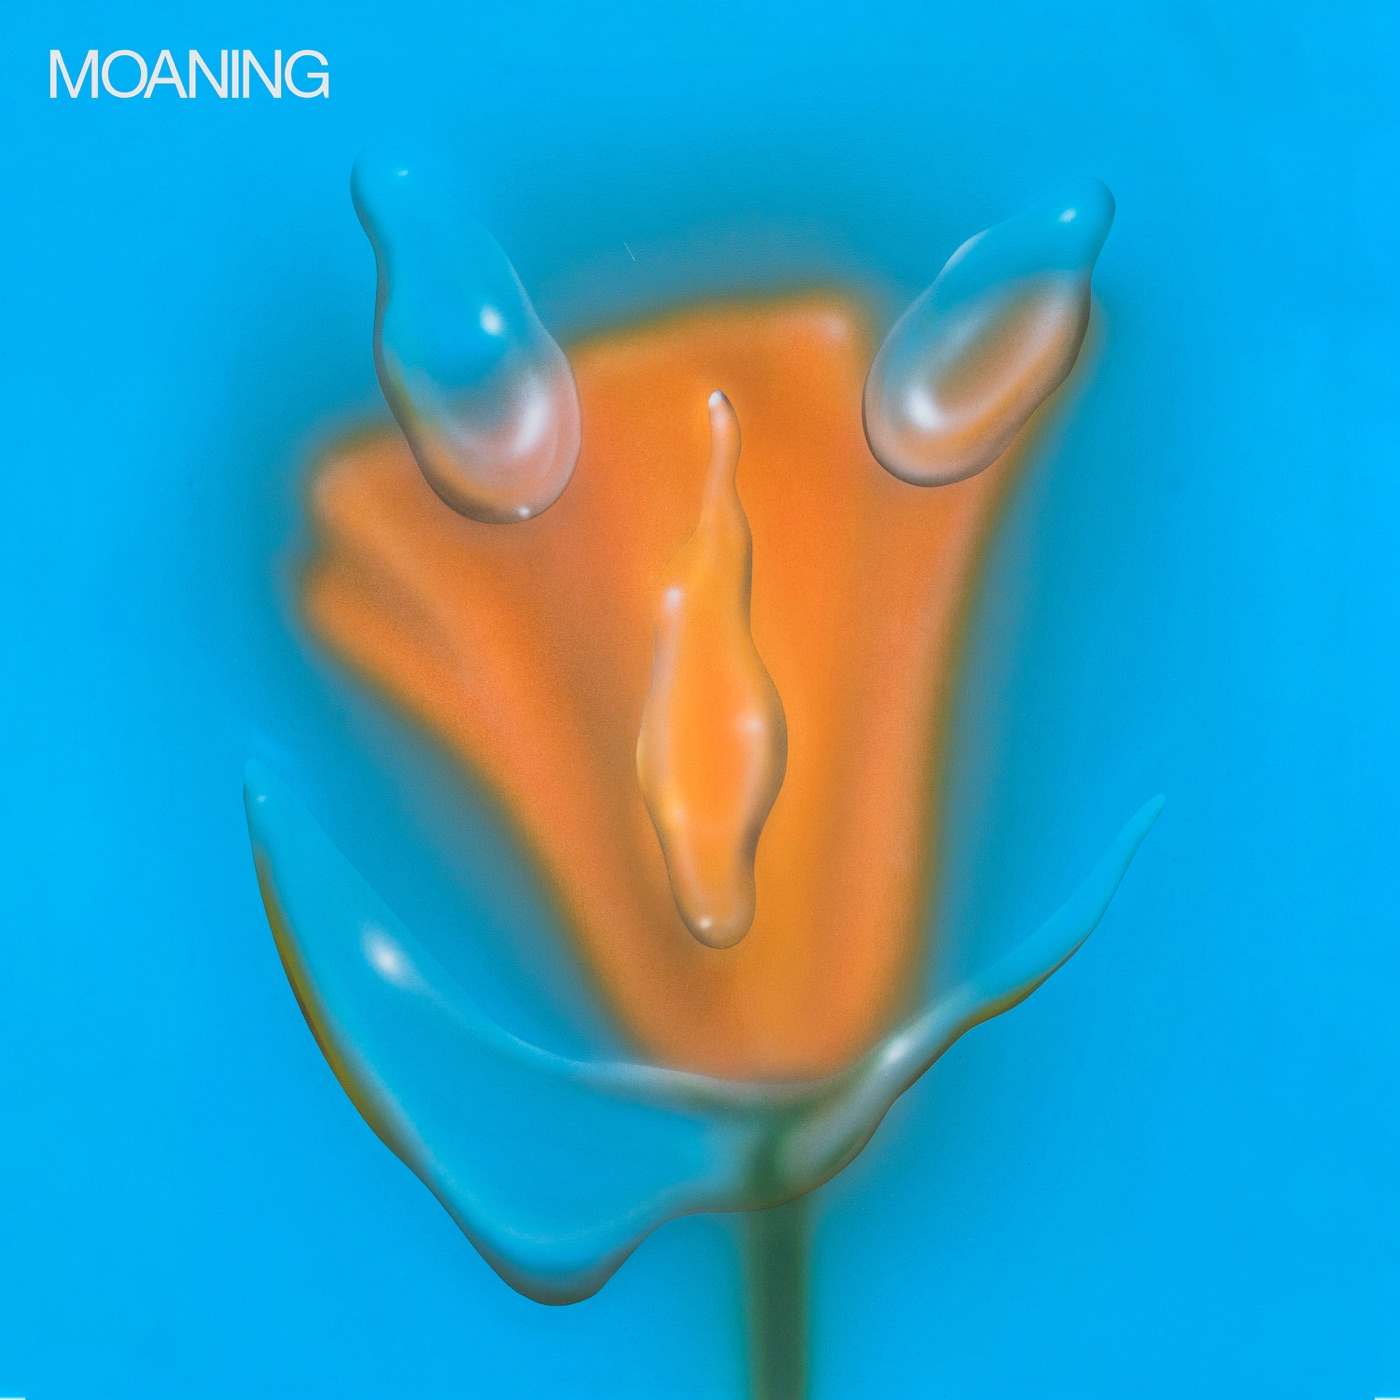 Moaning - Uneasy Laughter (2020)